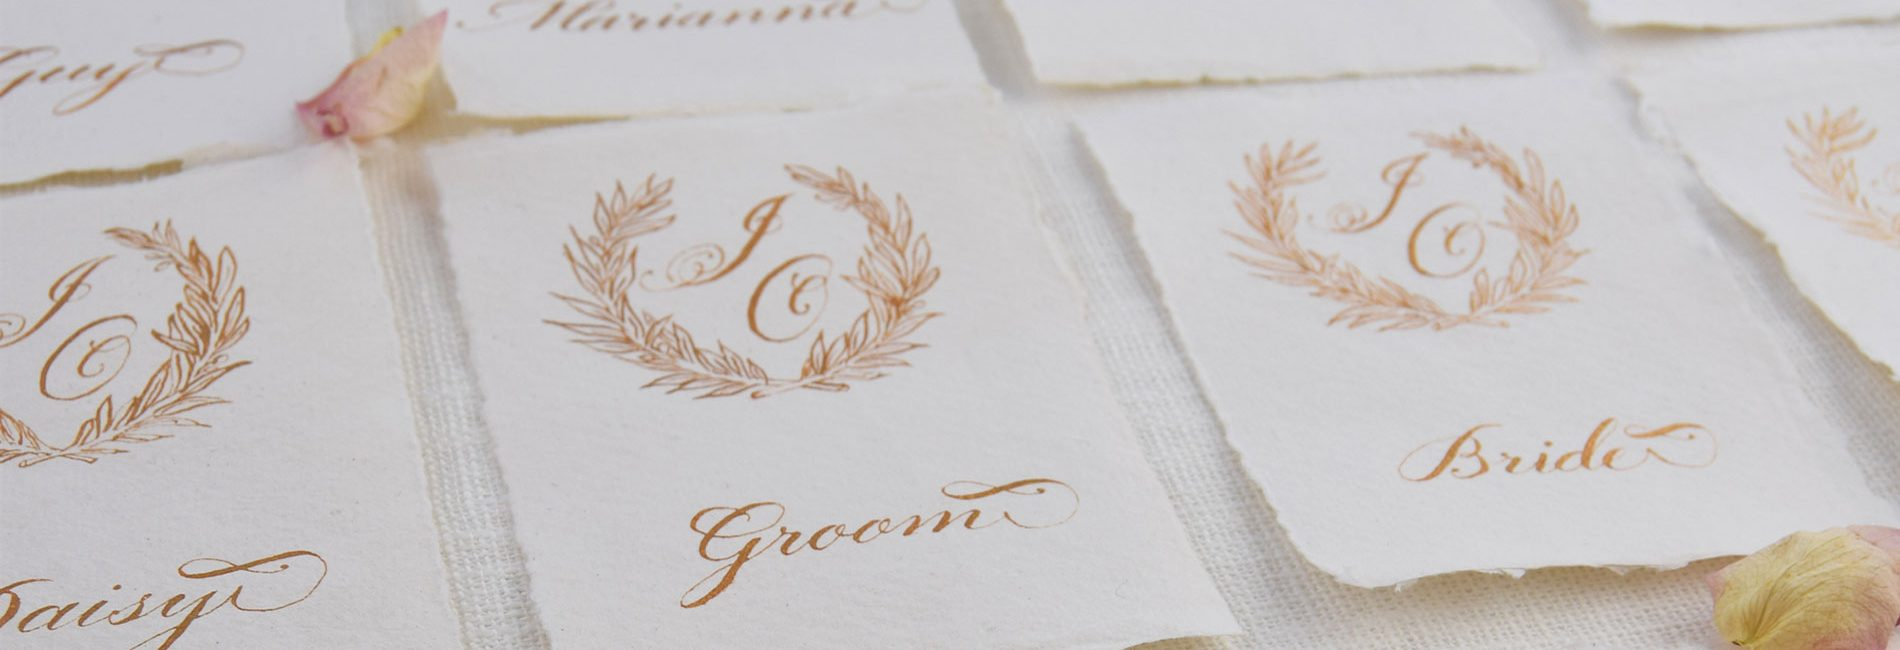 Modern Calligraphy Services - UK